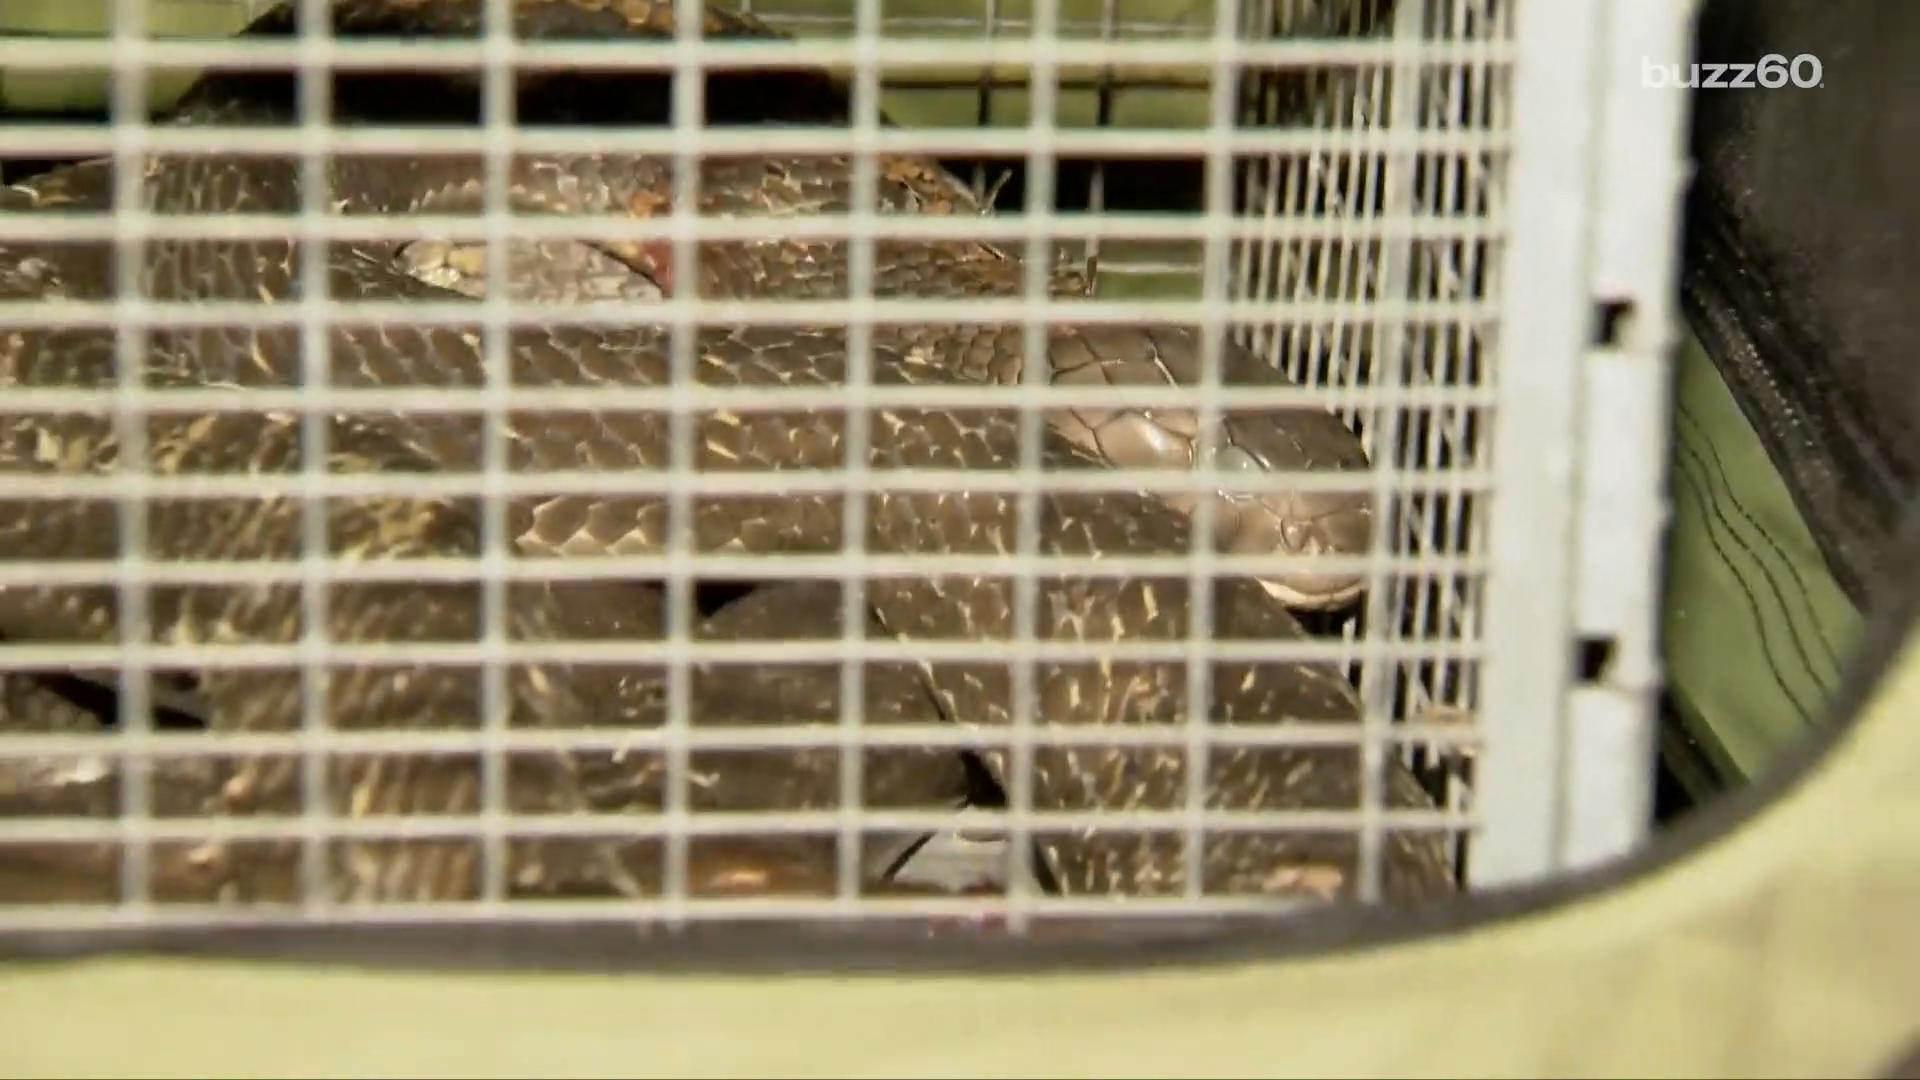 10-foot poisonous King Cobra found under woman's clothes dryer, puts up a fight